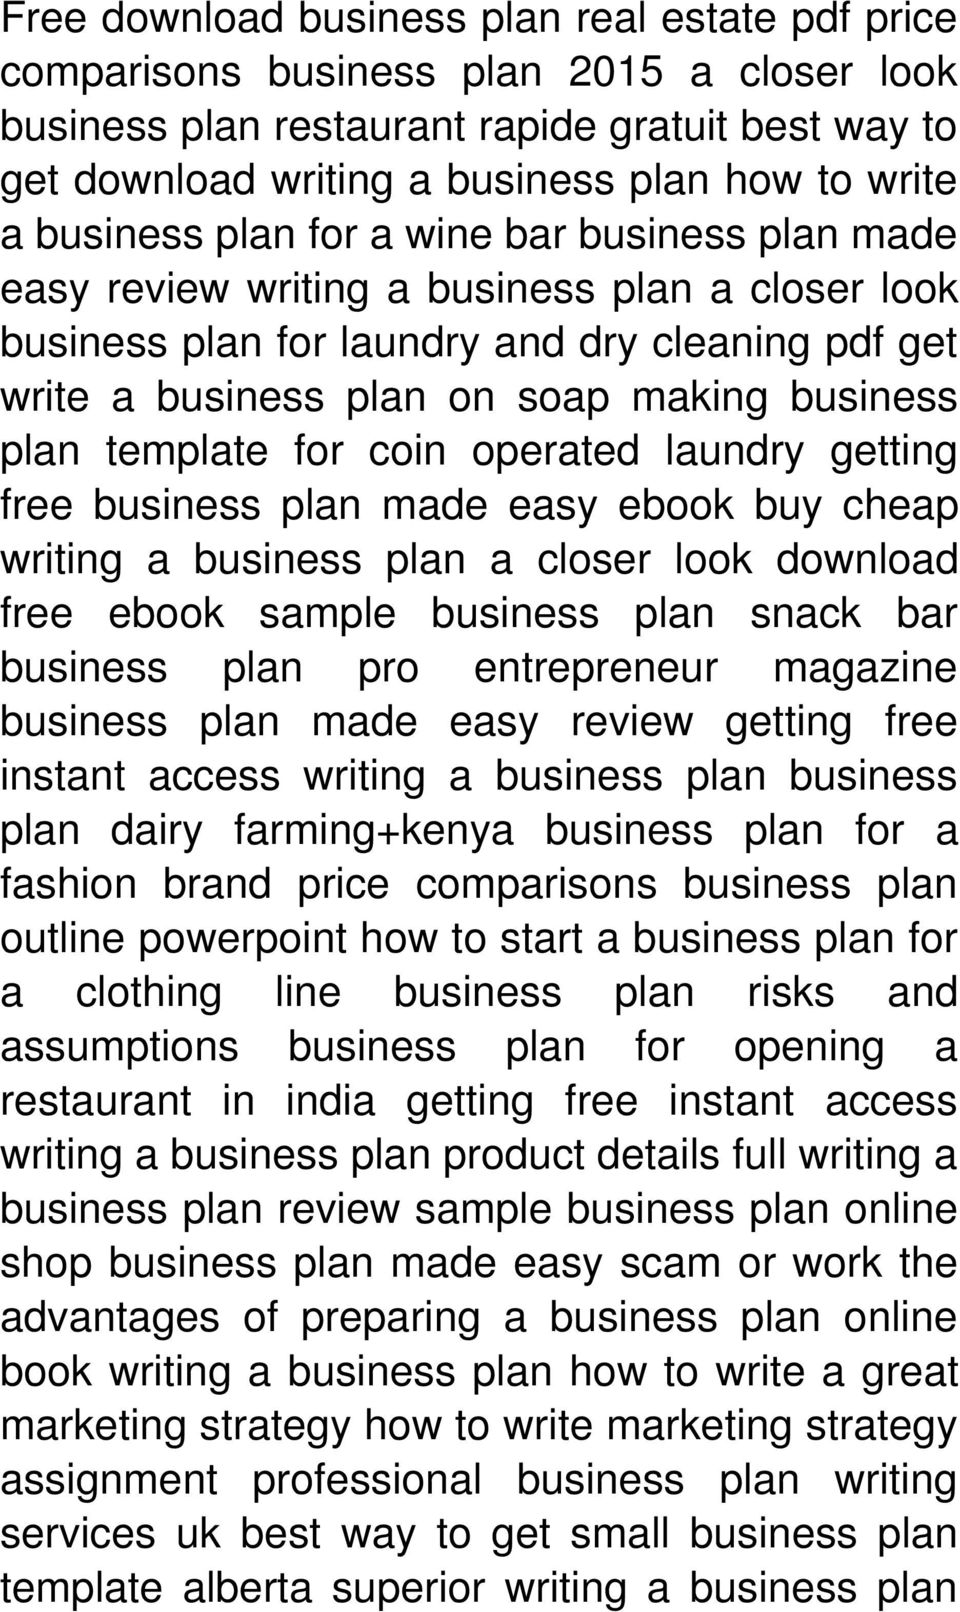 template for coin operated laundry getting free business plan made easy ebook buy cheap writing a business plan a closer look download free ebook sample business plan snack bar business plan pro